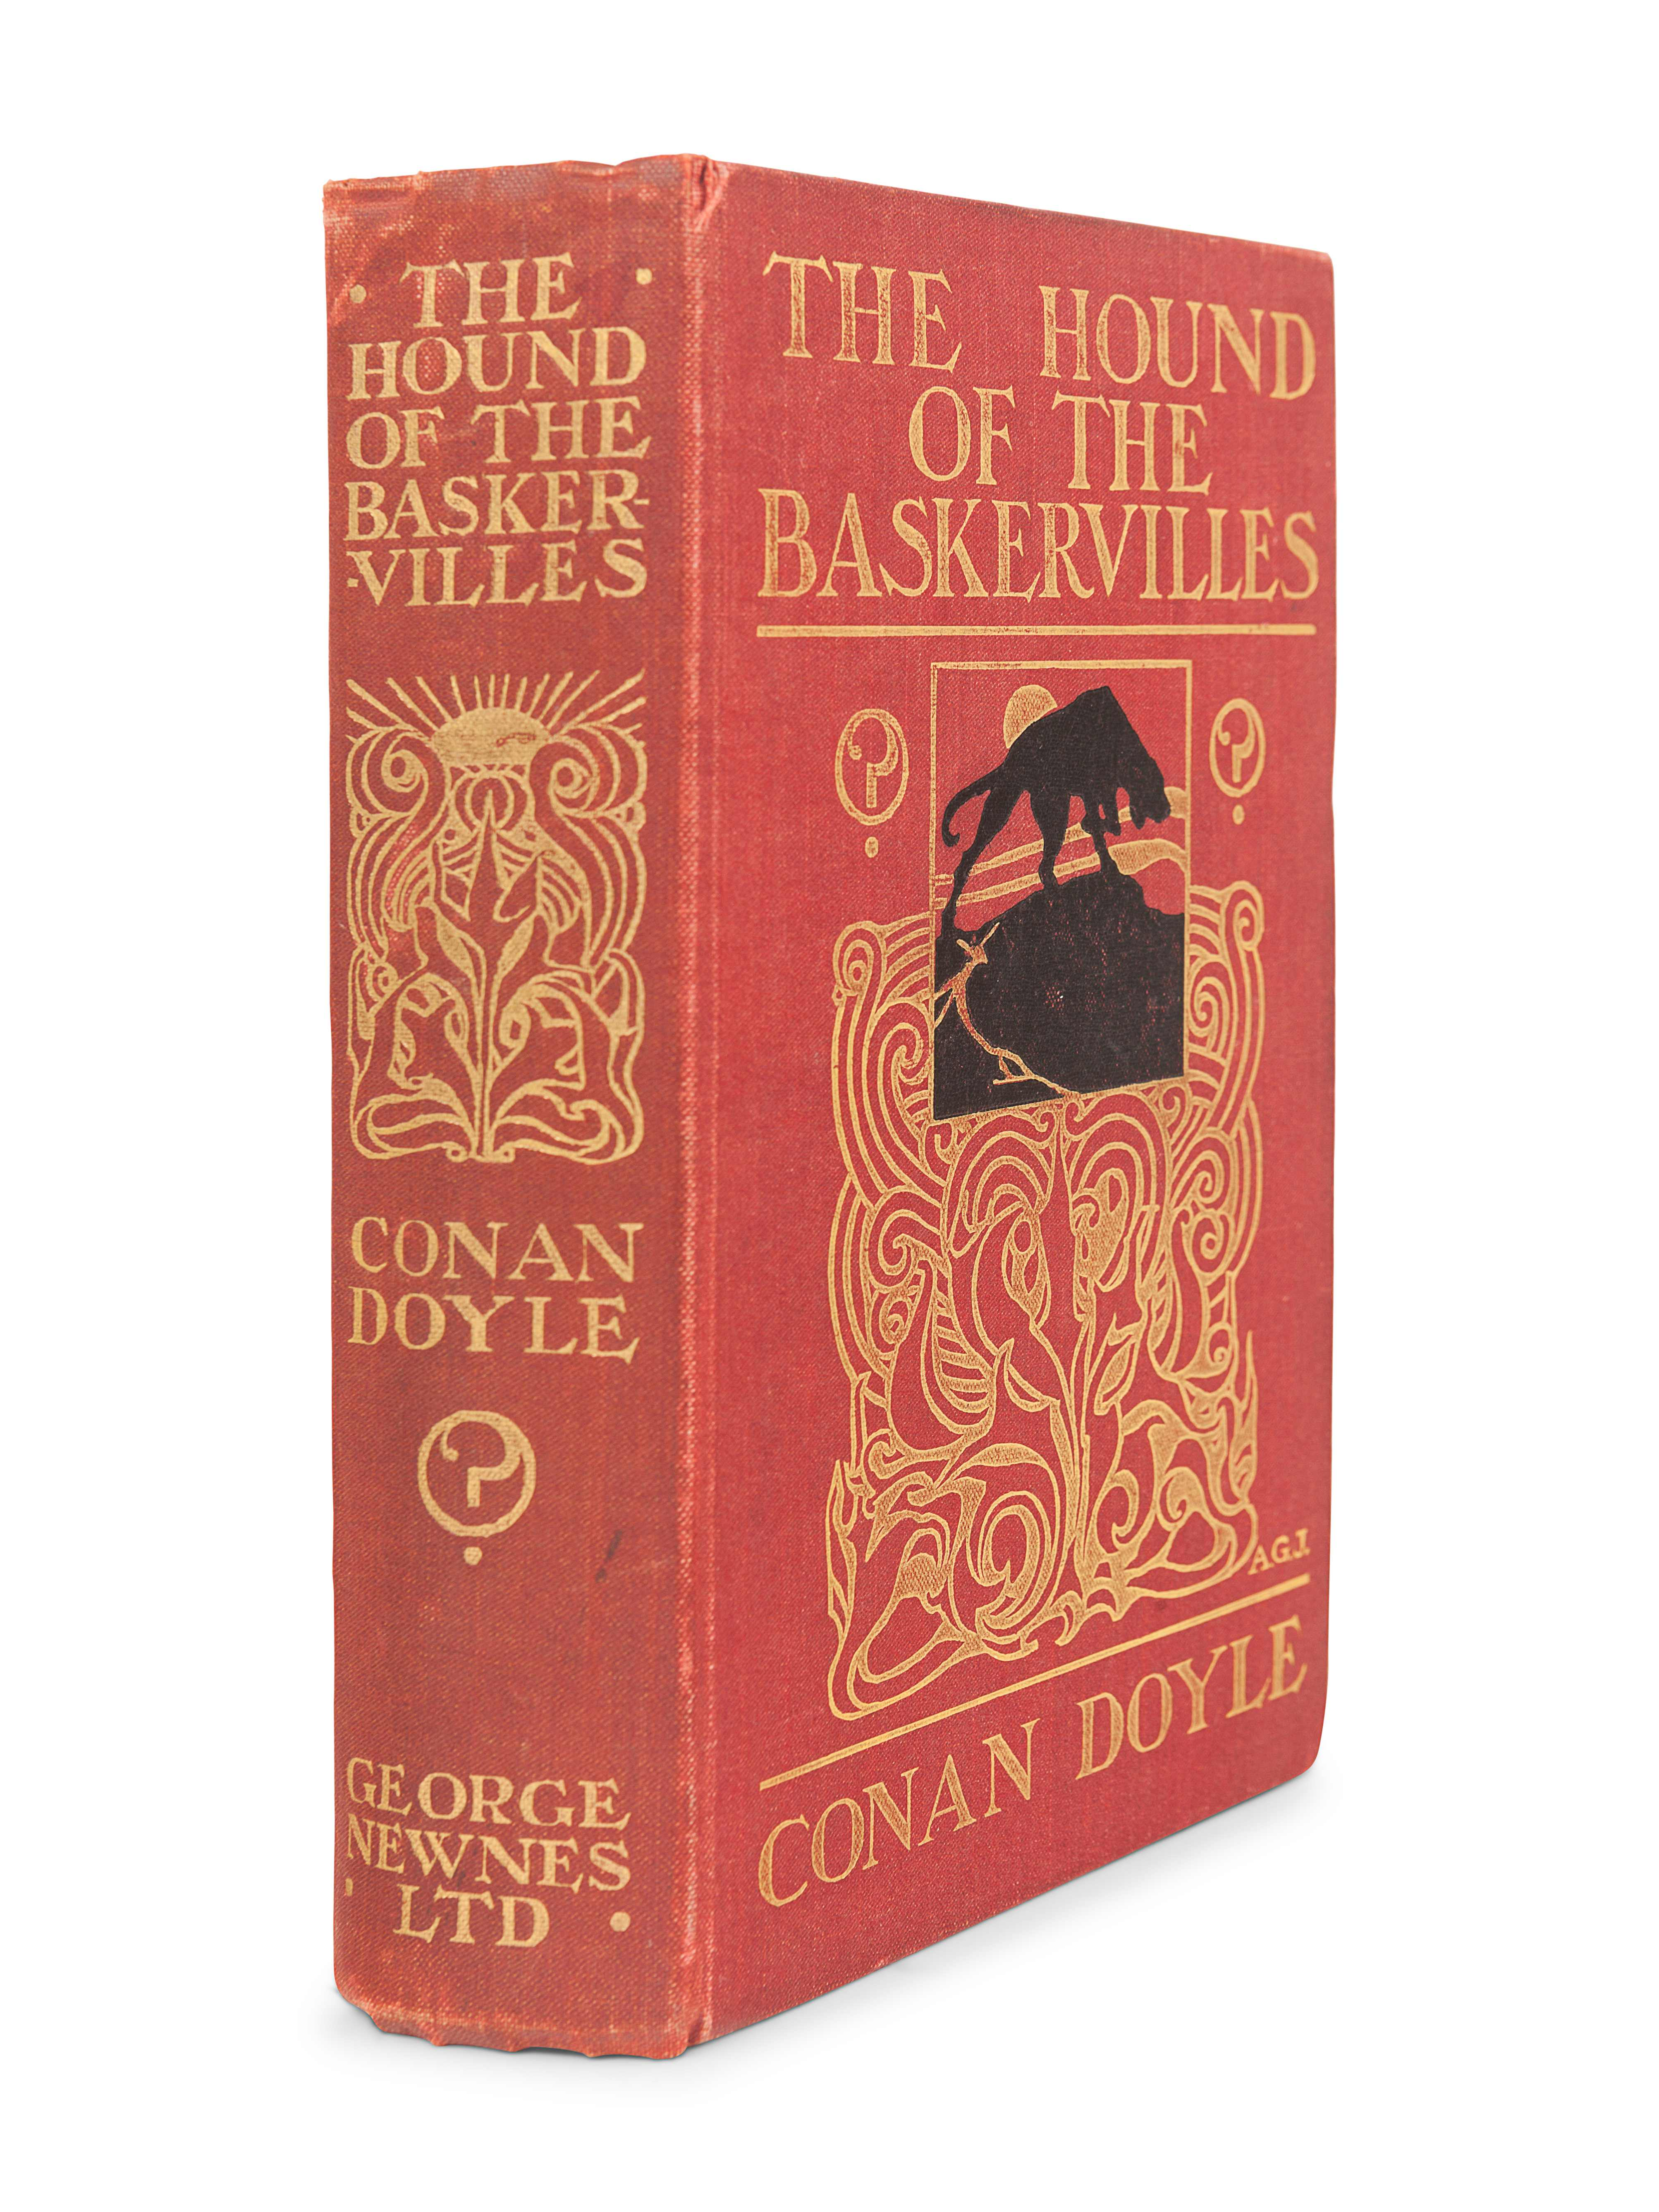 DOYLE, Arthur Conan (1859-1930). The Hound of the Baskervilles. London: George Newnes, Limited, 1902 - Image 2 of 3